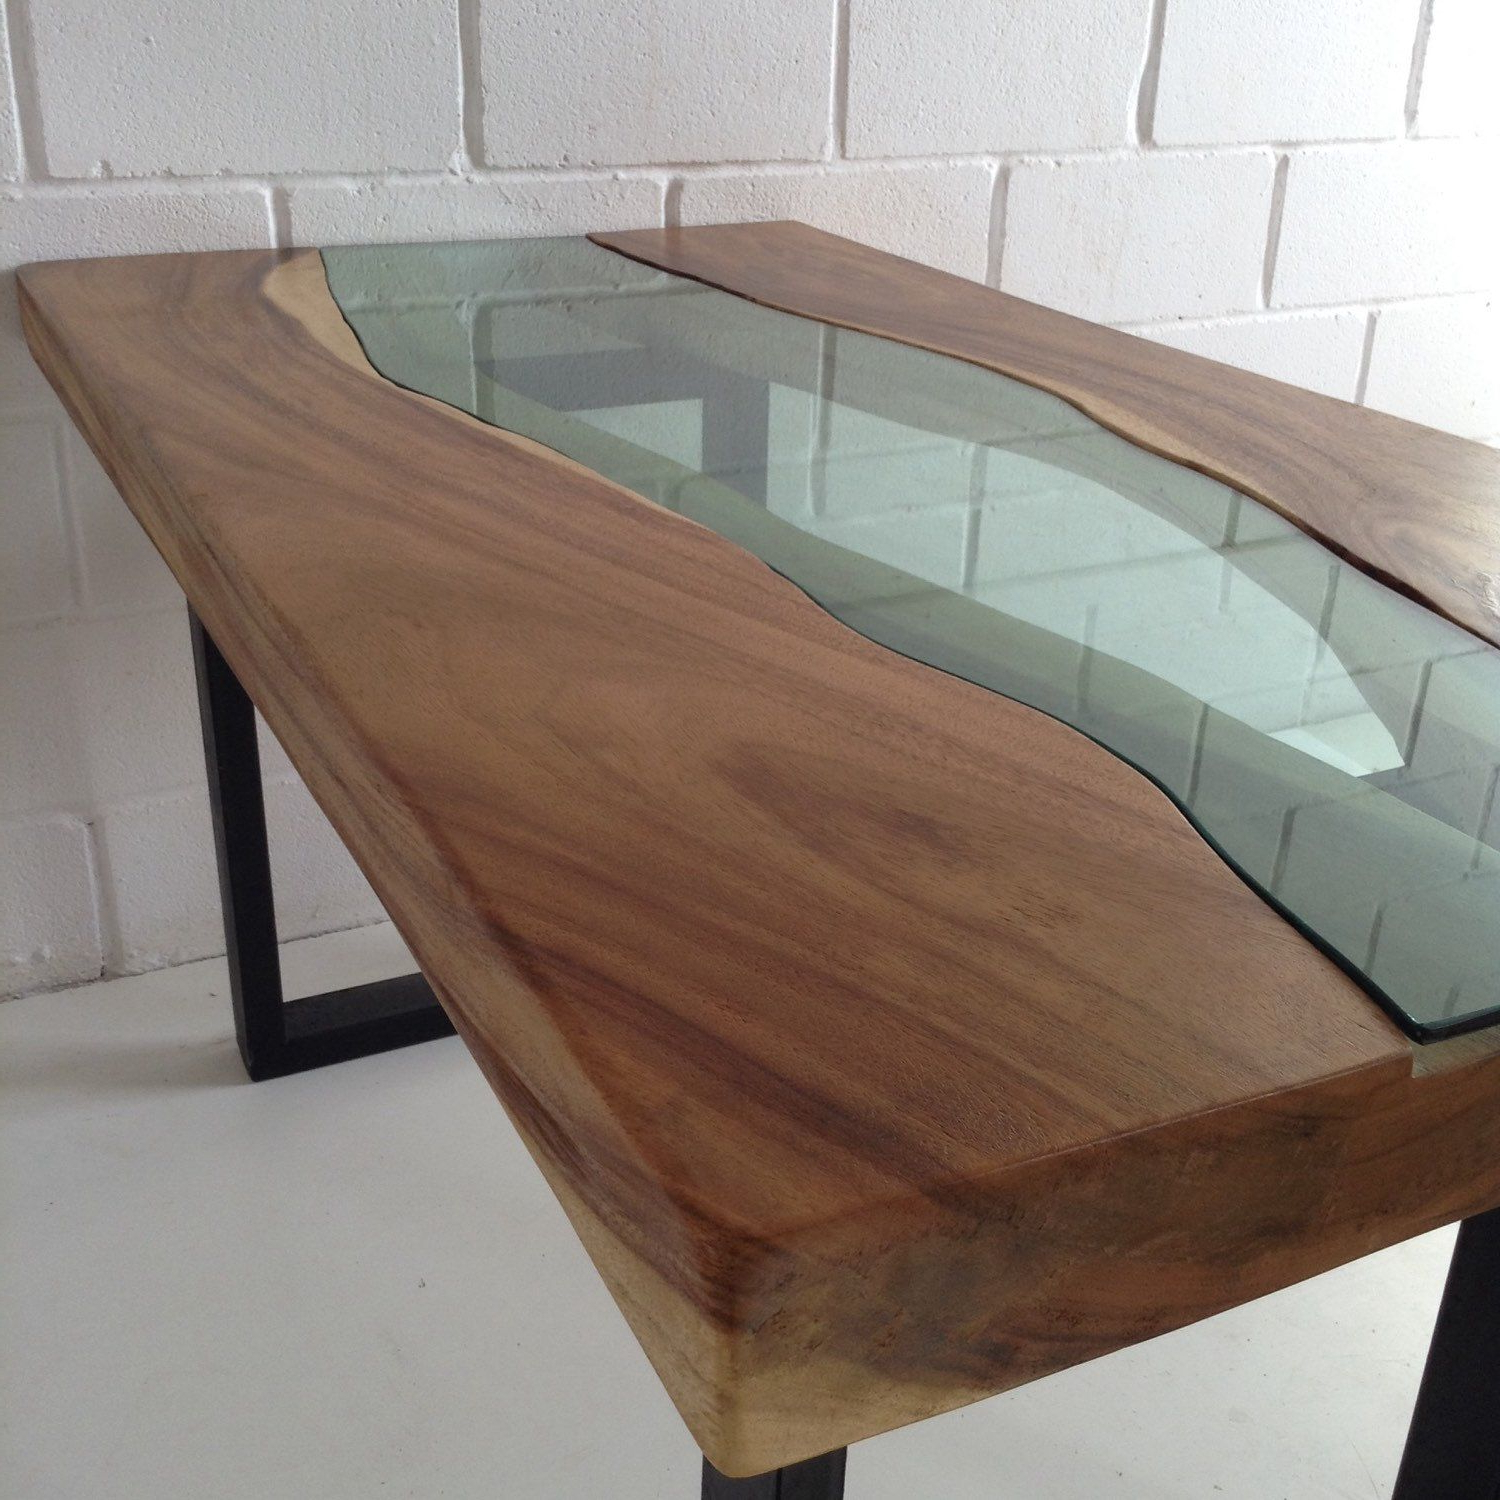 Most Recent Acacia Top Dining Tables With Metal Legs Throughout Live Edge Acacia Wood Dining Table With Glass River Centre (View 18 of 25)